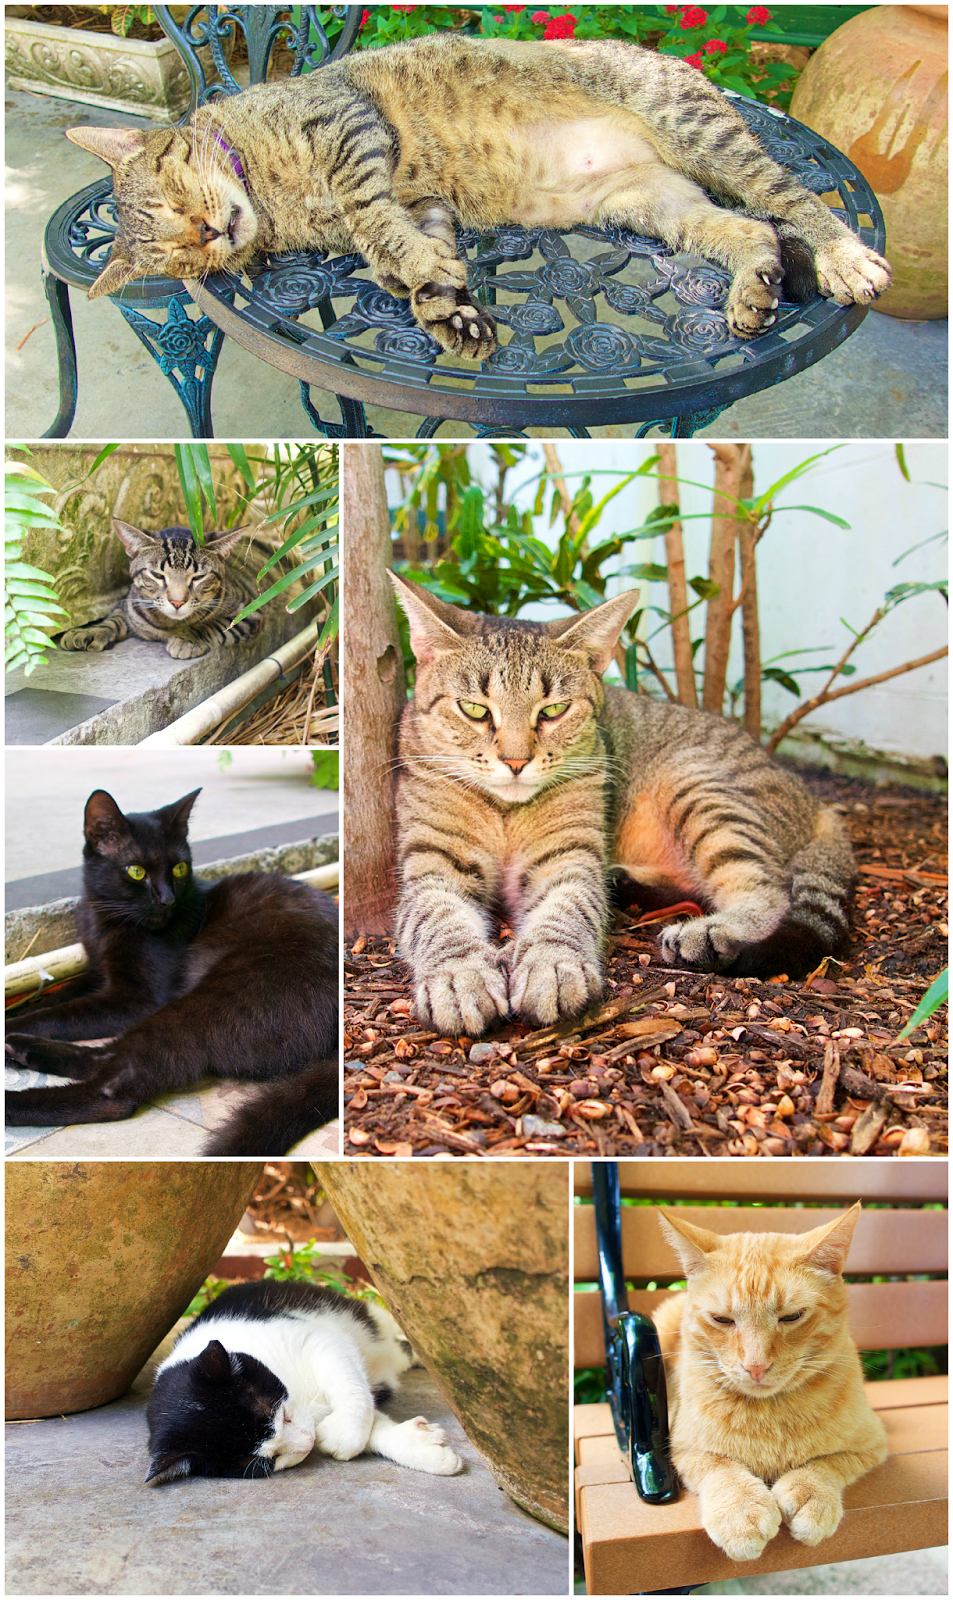 Hemingway Cats with 6 toes Key West, FL Hemingway cats